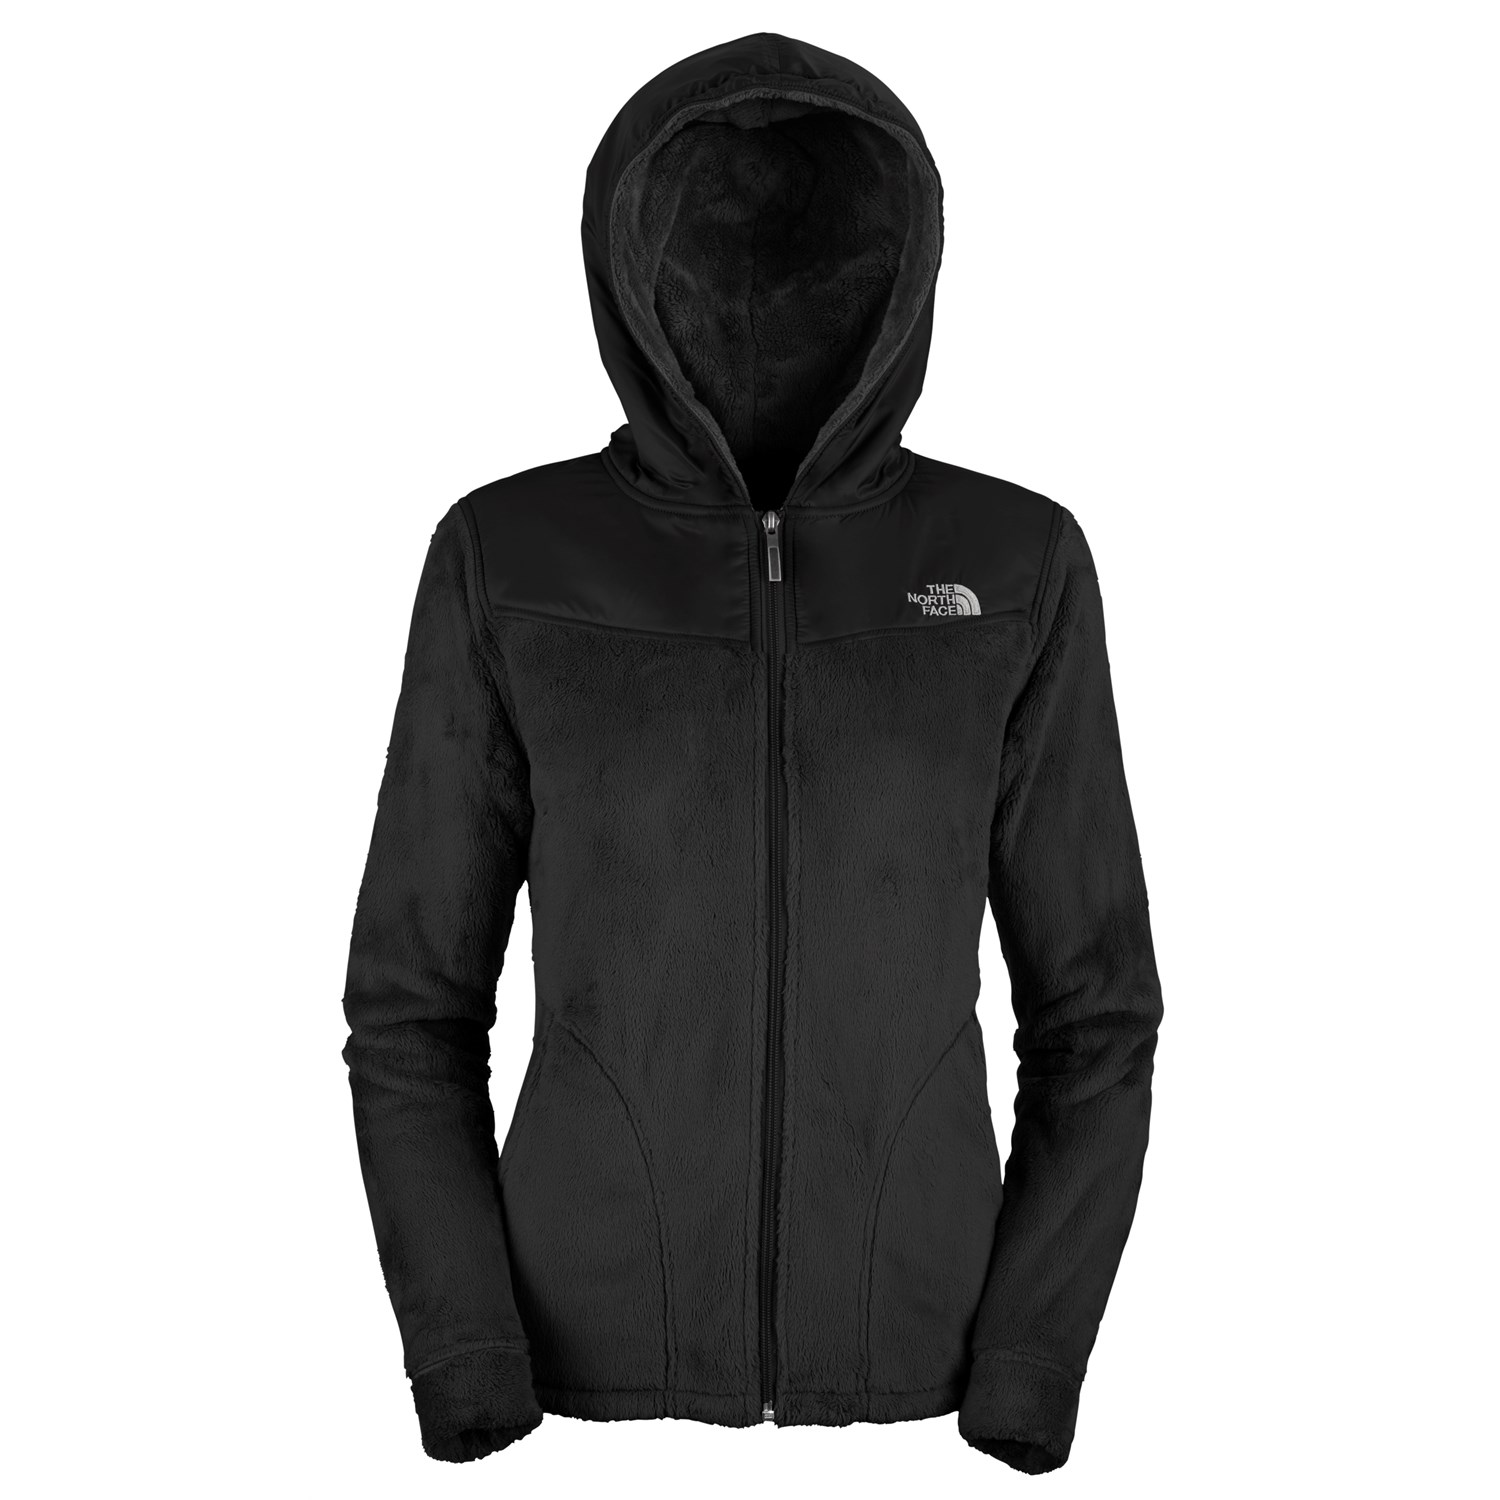 36c703f0ee42 The North Face Oso Hoodie - Women s